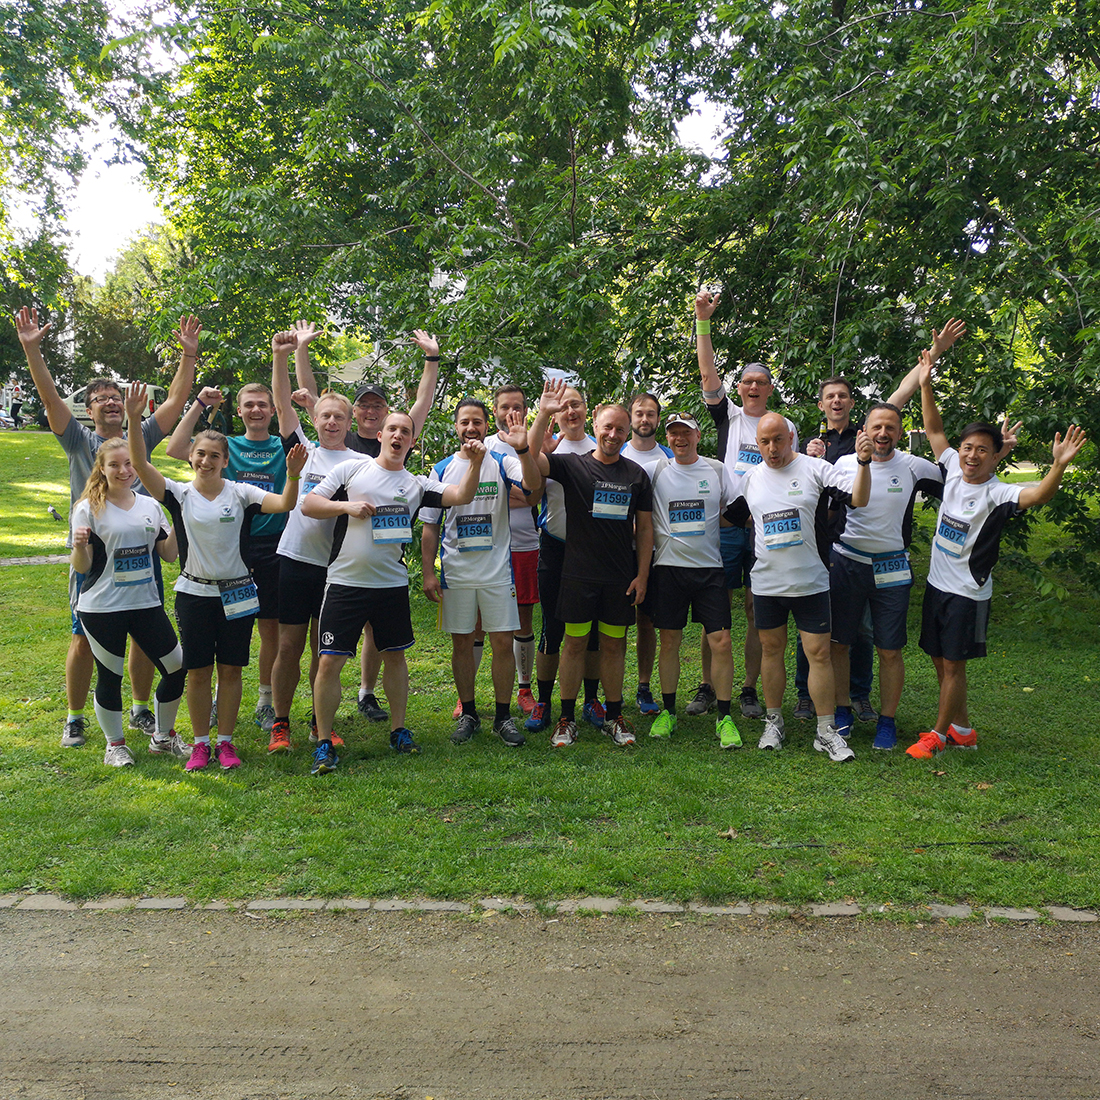 Das Controlware-Team beim J.P. Morgan Run in Frankfurt.